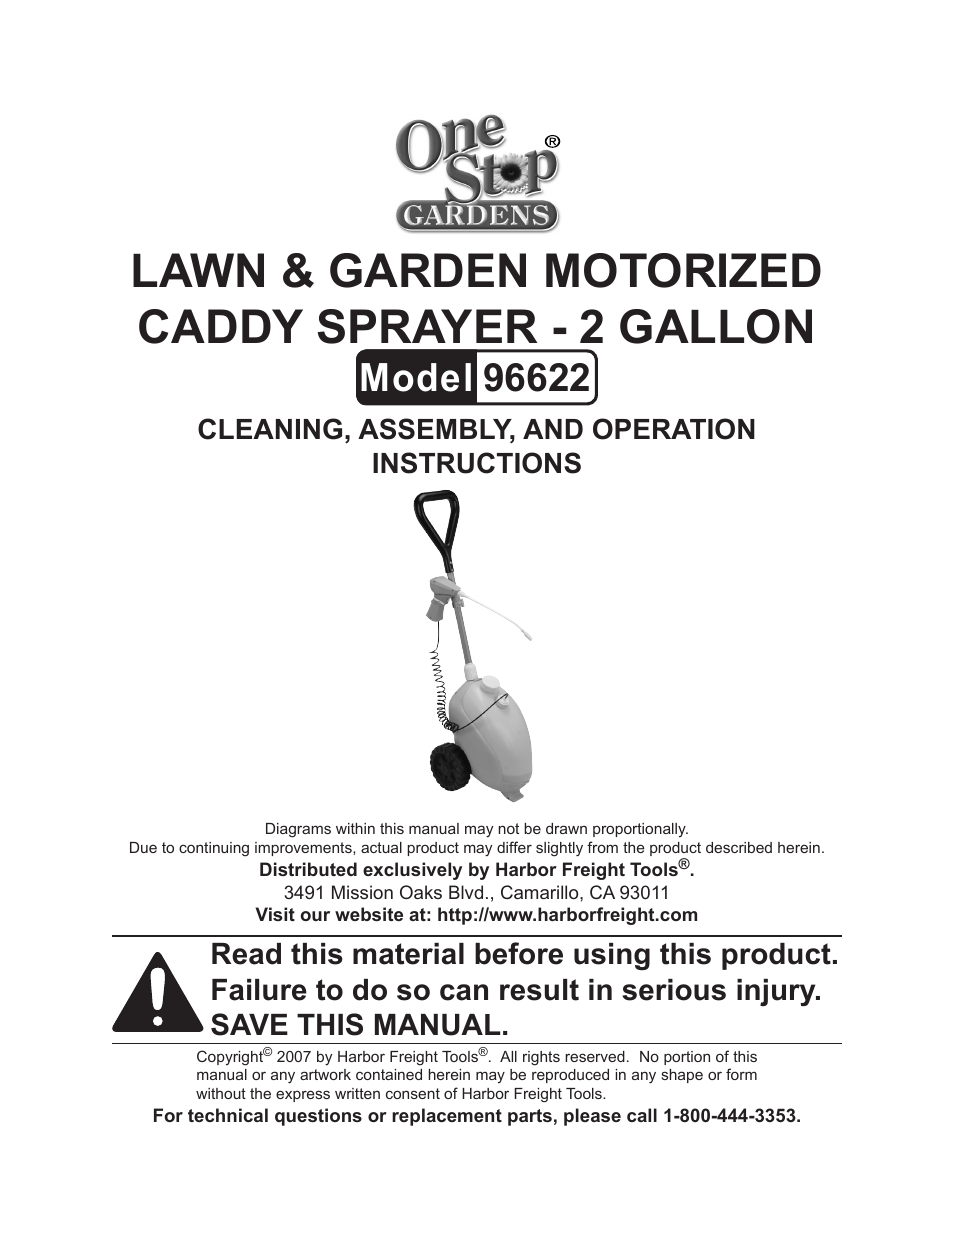 One Stop Gardens Caddy Sprayer 96622 User Manual 10 Pages